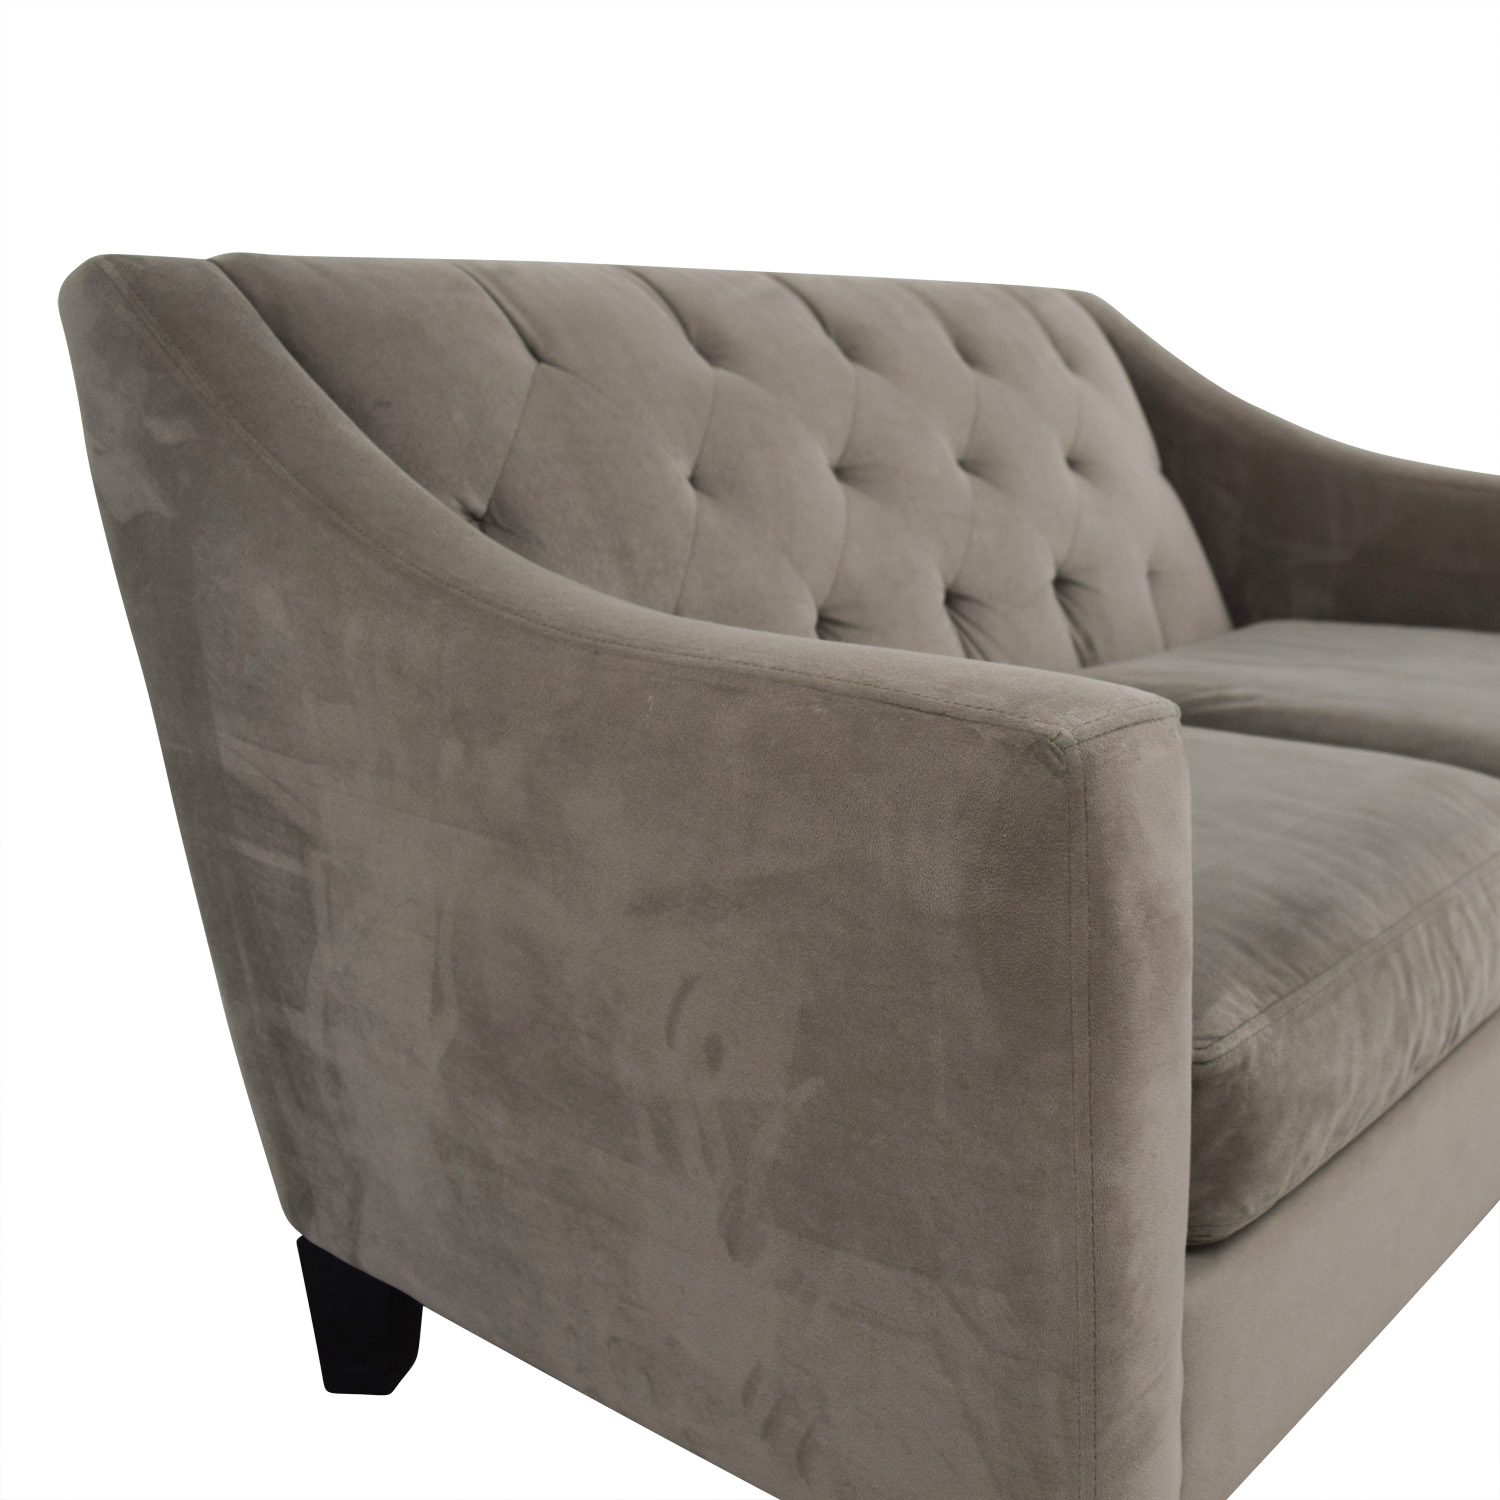 90 OFF  Better by Design Better by Design Grey Tufted